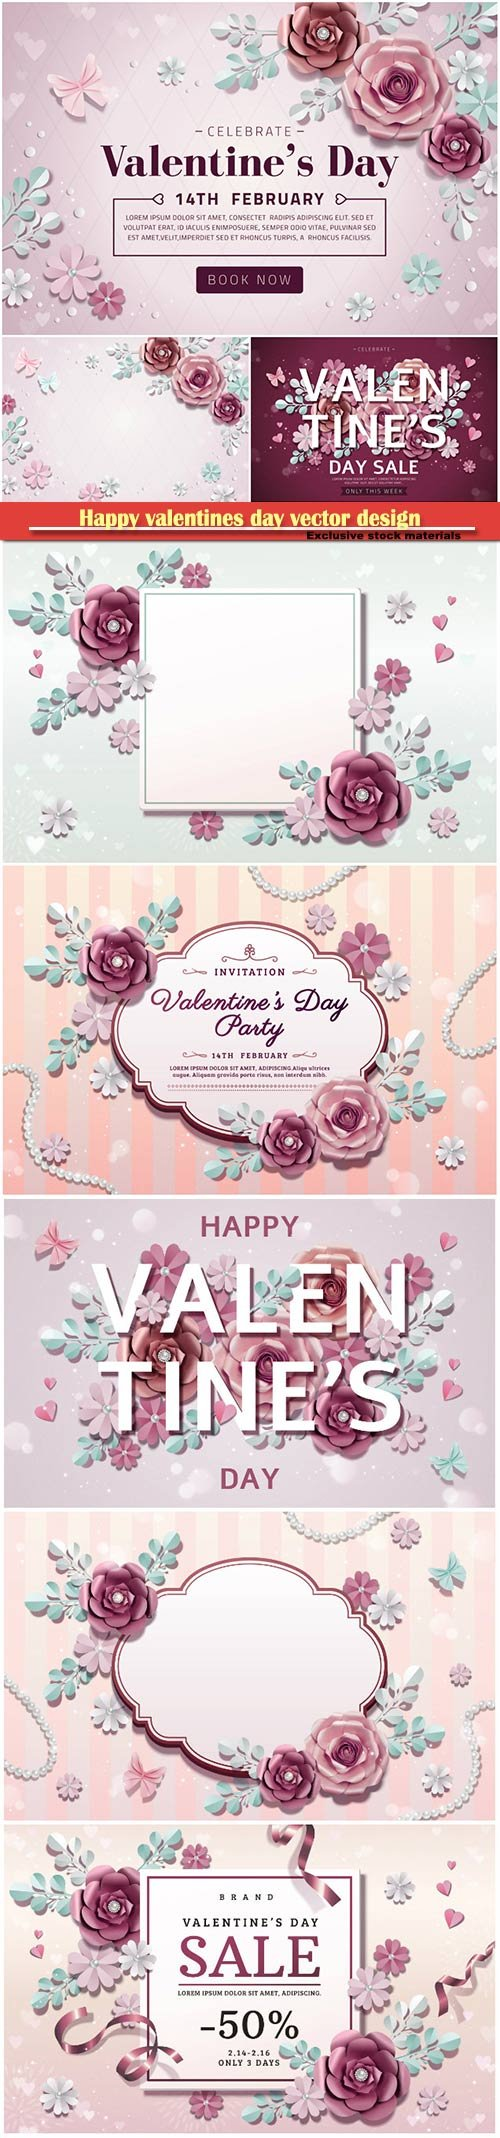 Happy valentines day vector design with heart, balloons, roses in 3d illustration # 6